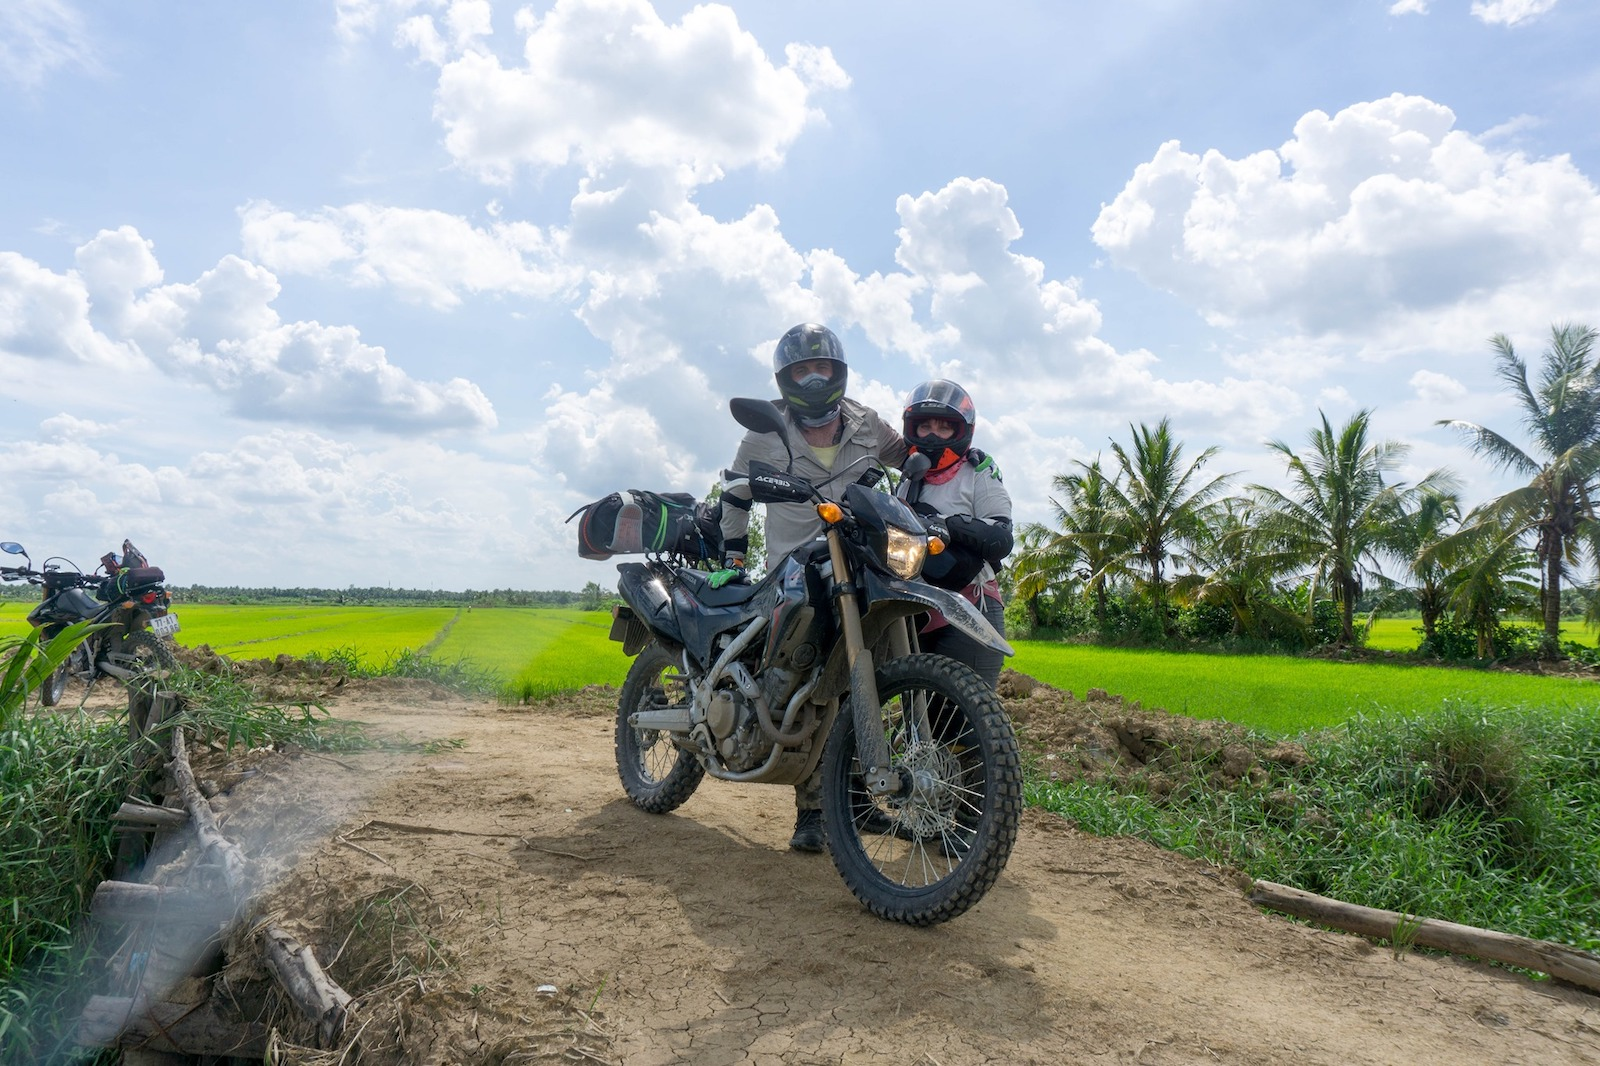 Image of a couple motorbiking together